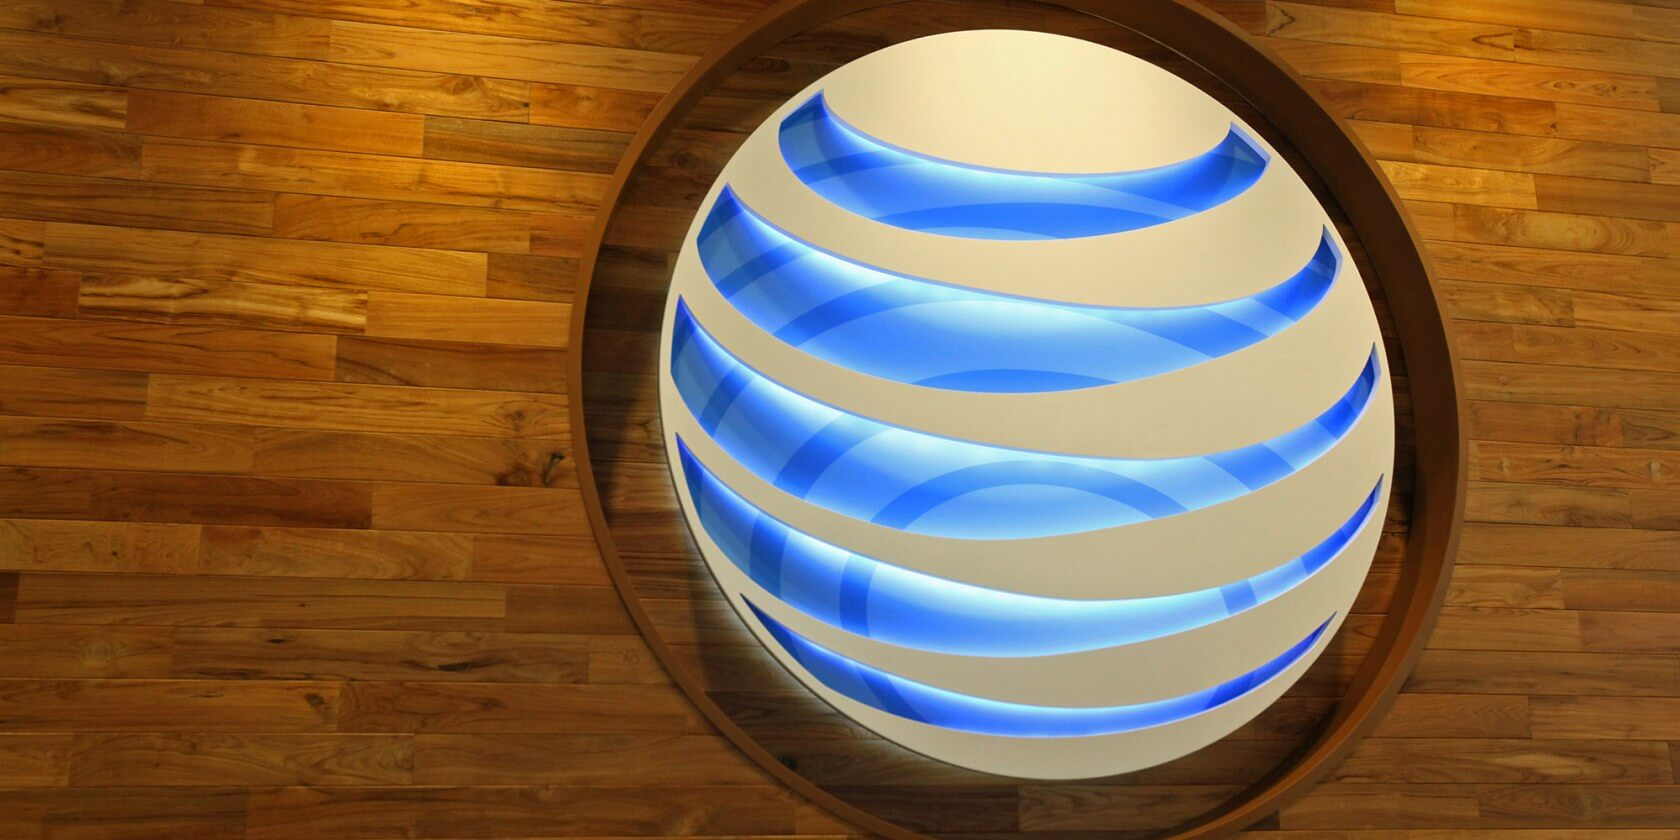 Mobile, Sprint and AT&T are under fire for selling customer location data